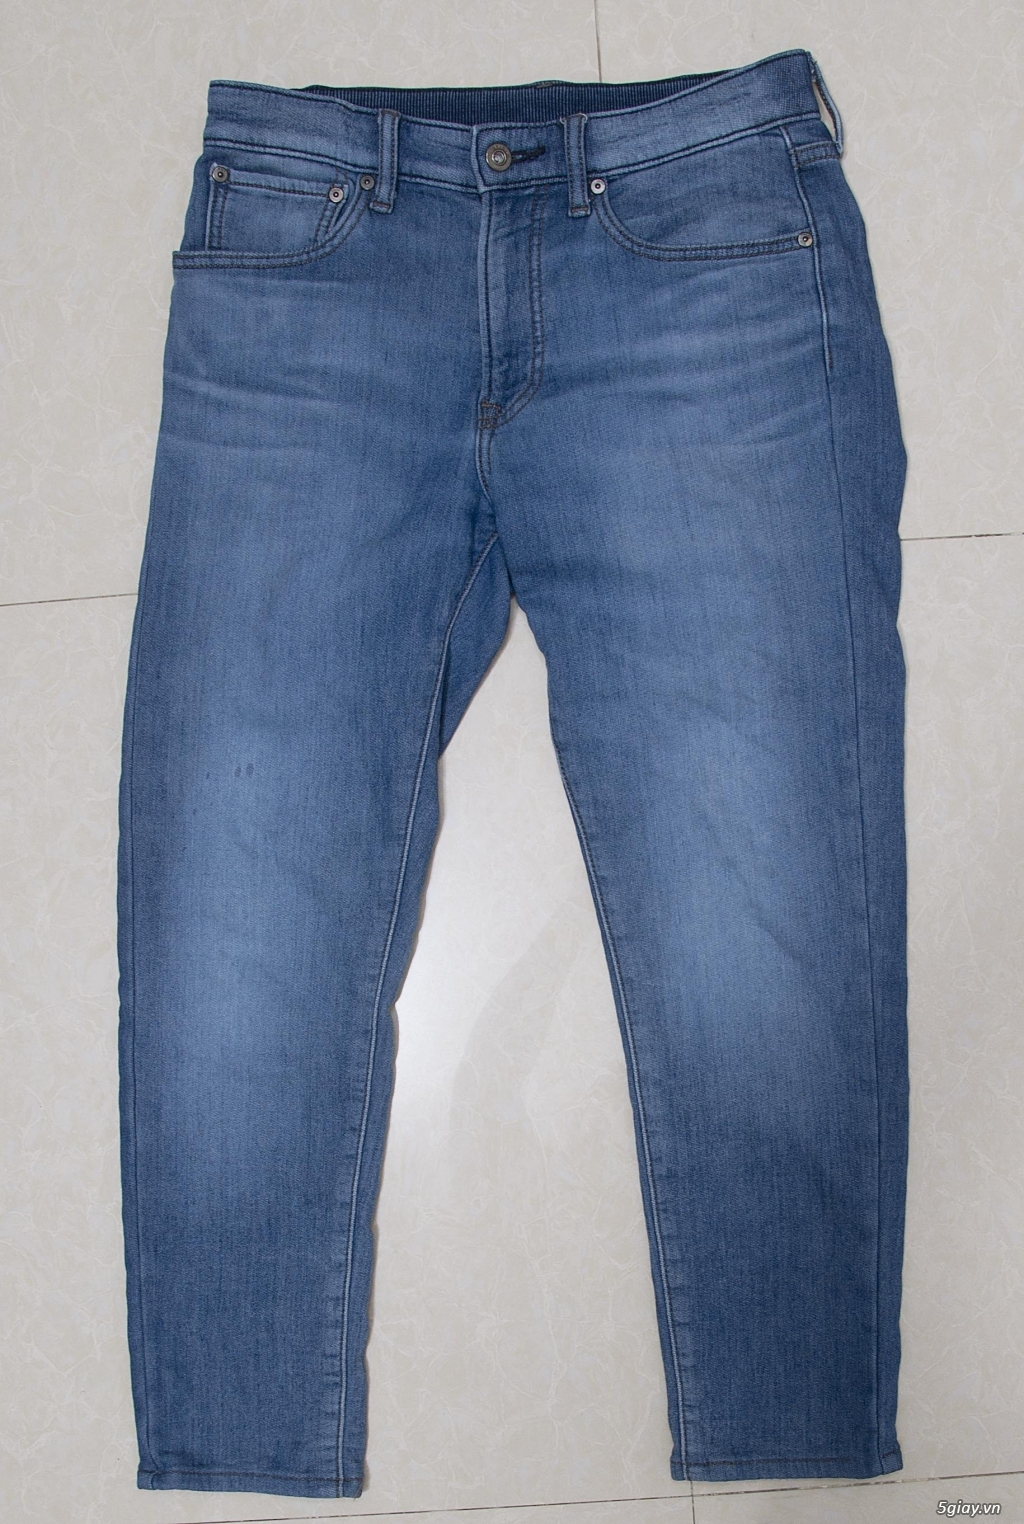 Jeans Authentic end nhanh 22h59' - 3/6/2021.